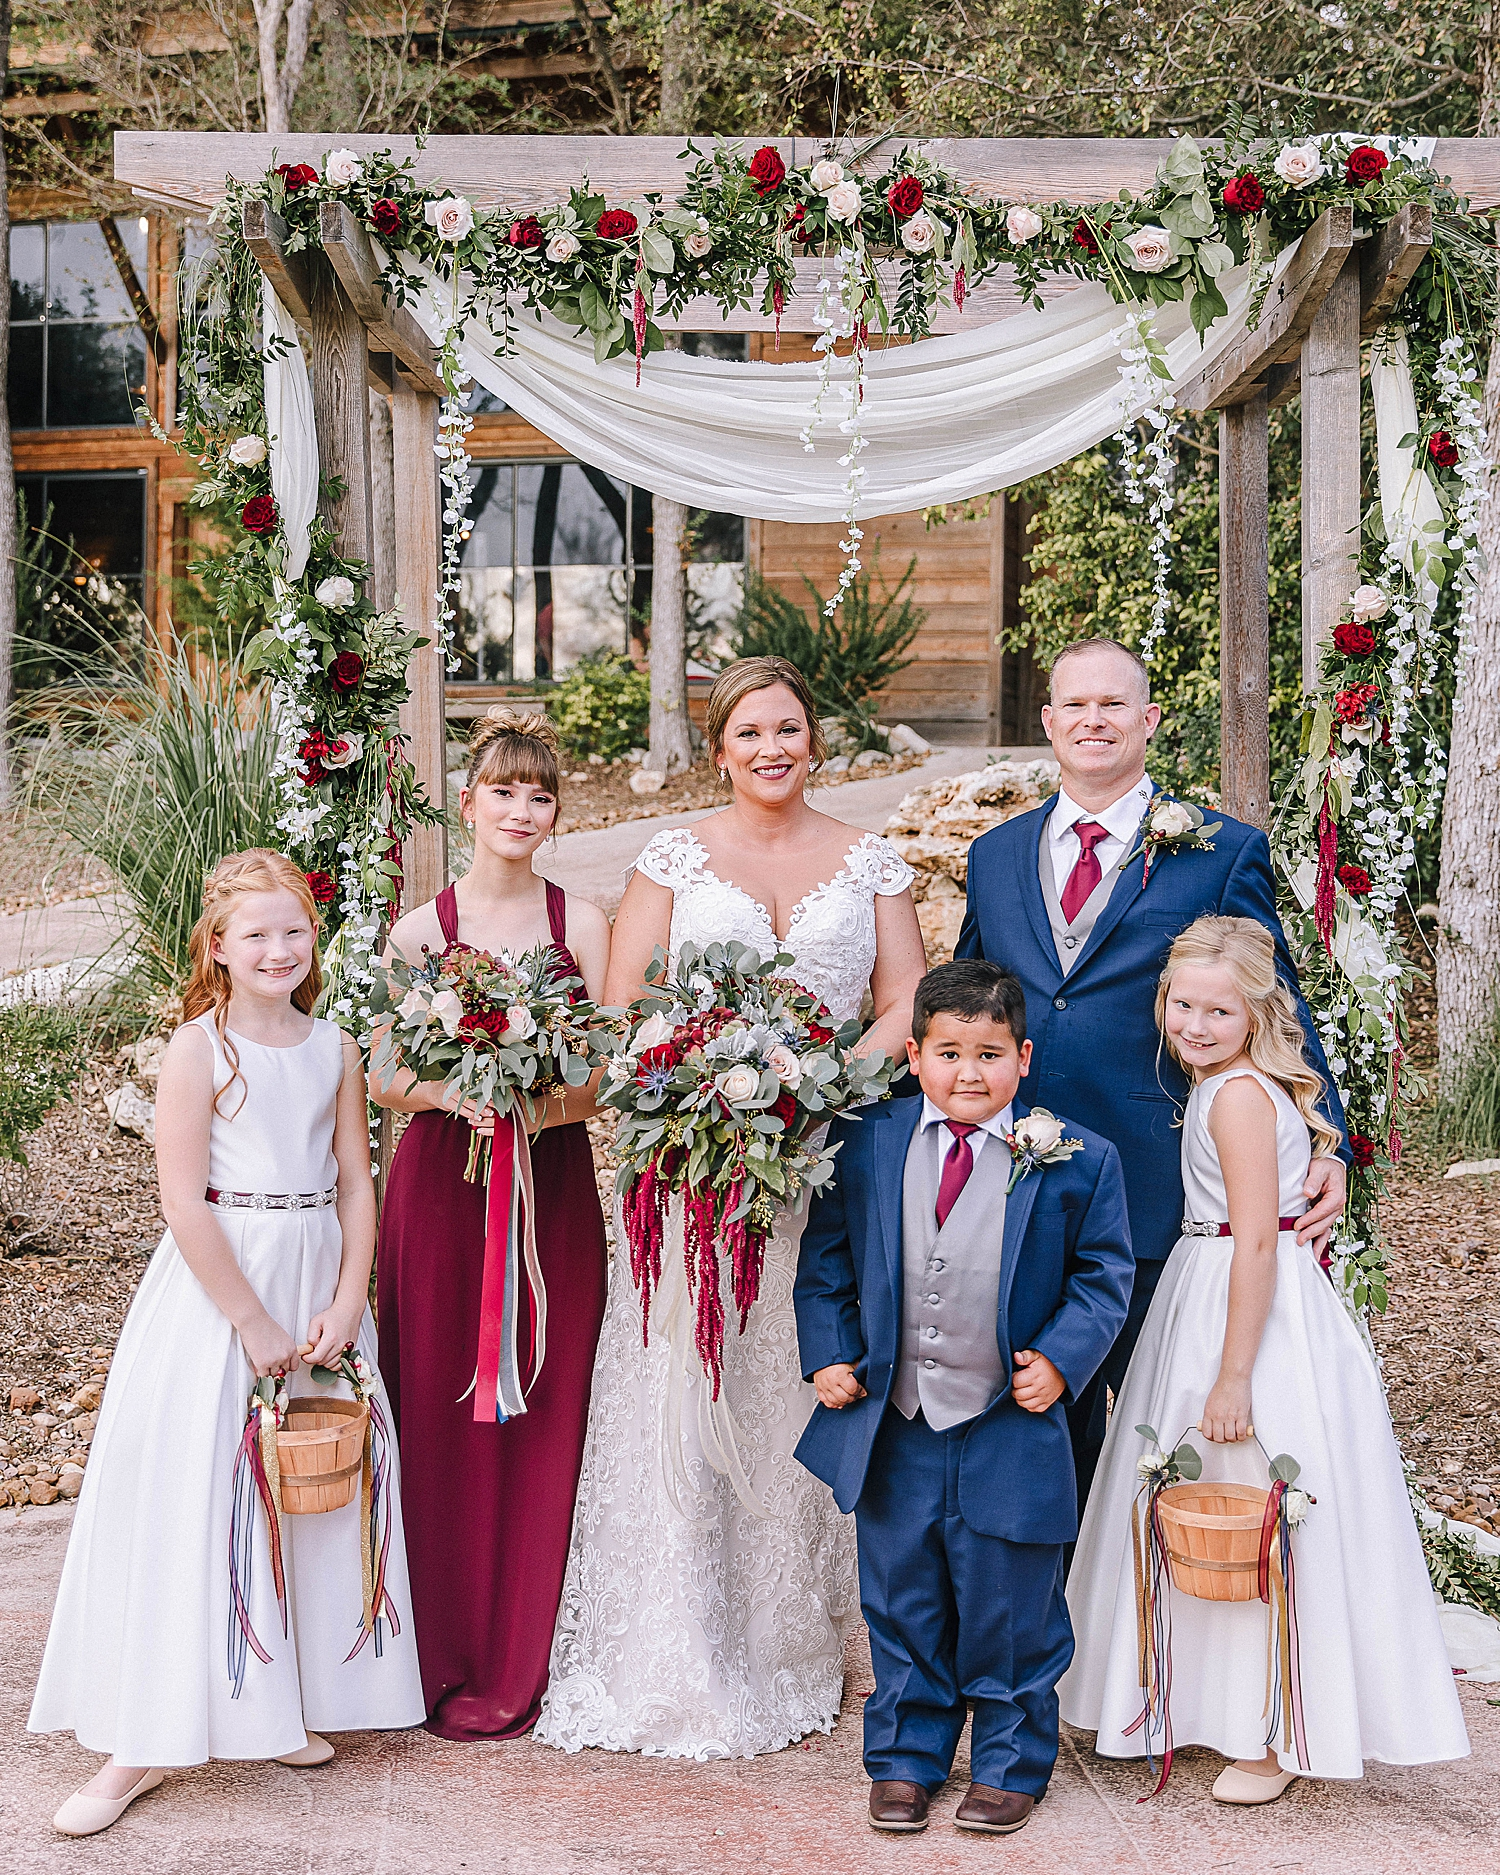 Geronimo-Oaks-Wedding-Venue-Seguin-Texas-Elegant-Navy-Burgundy-Wedding-Carly-Barton-Photography_0035.jpg